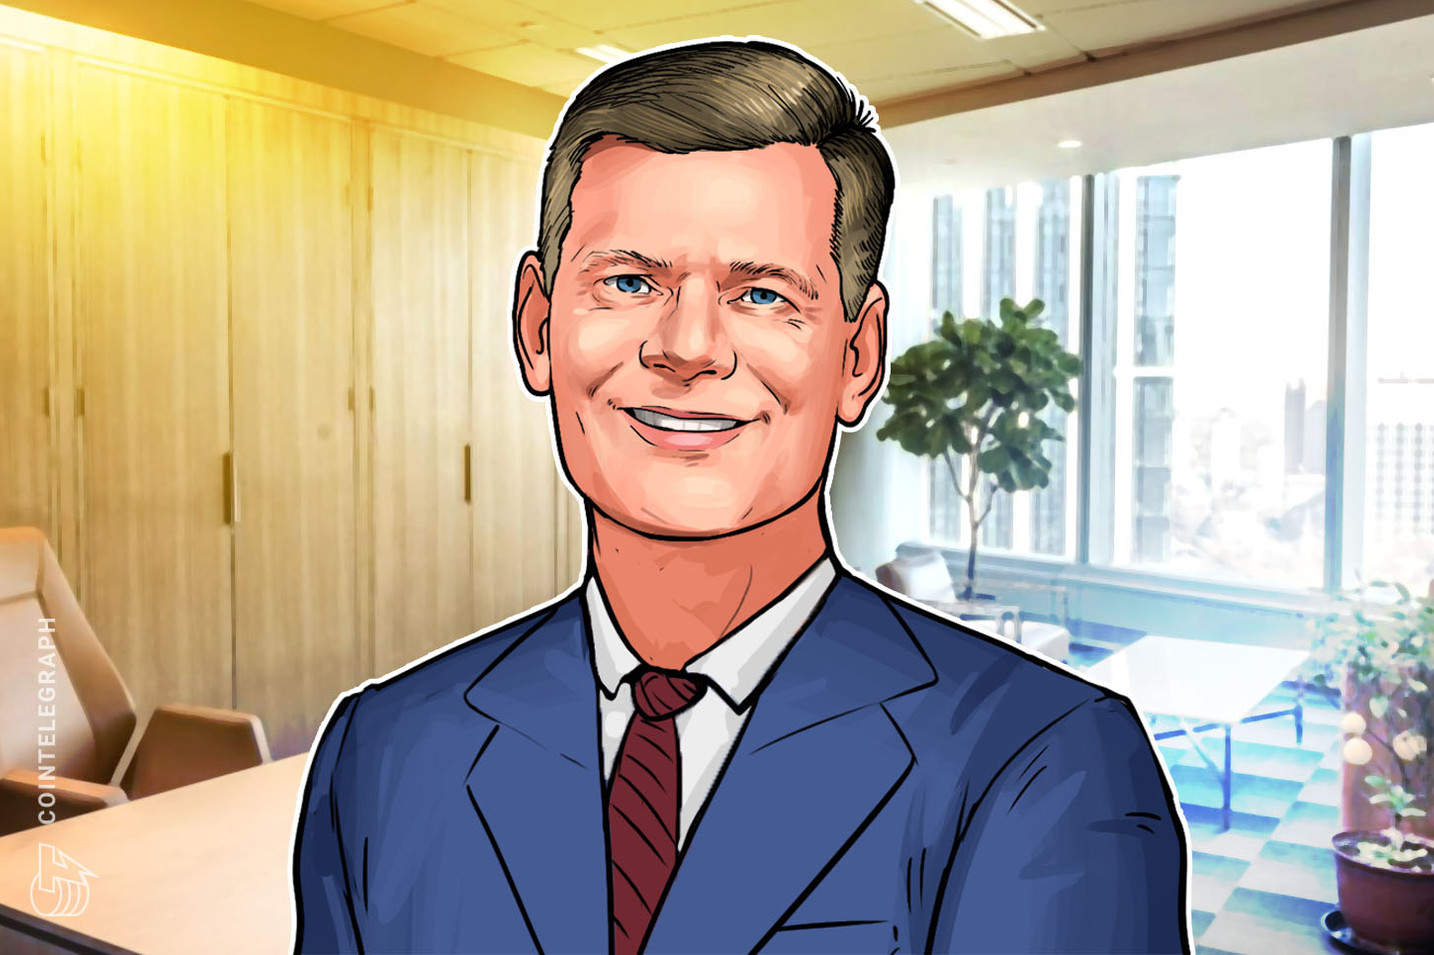 Bankless society 'inevitable' due to crypto, says Morgan Creek CEO